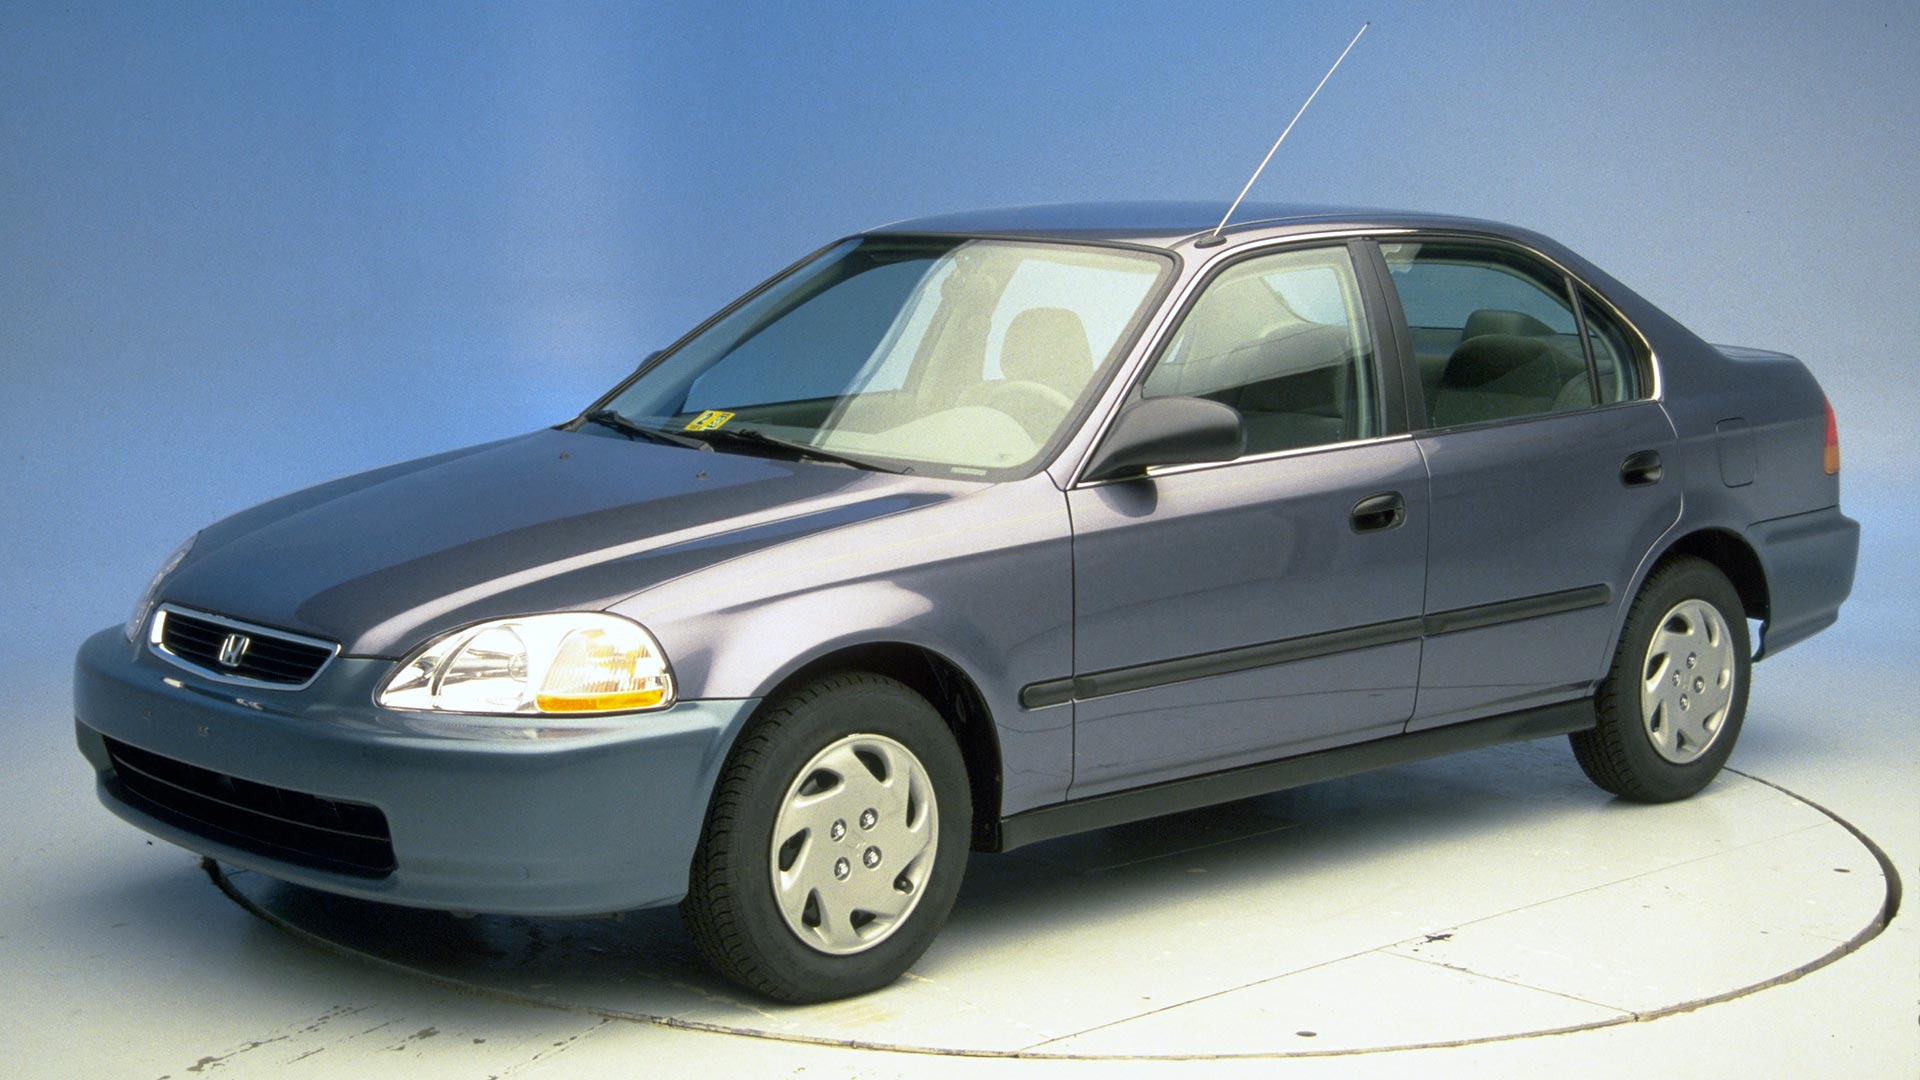 1999 Honda Civic 4-door sedan